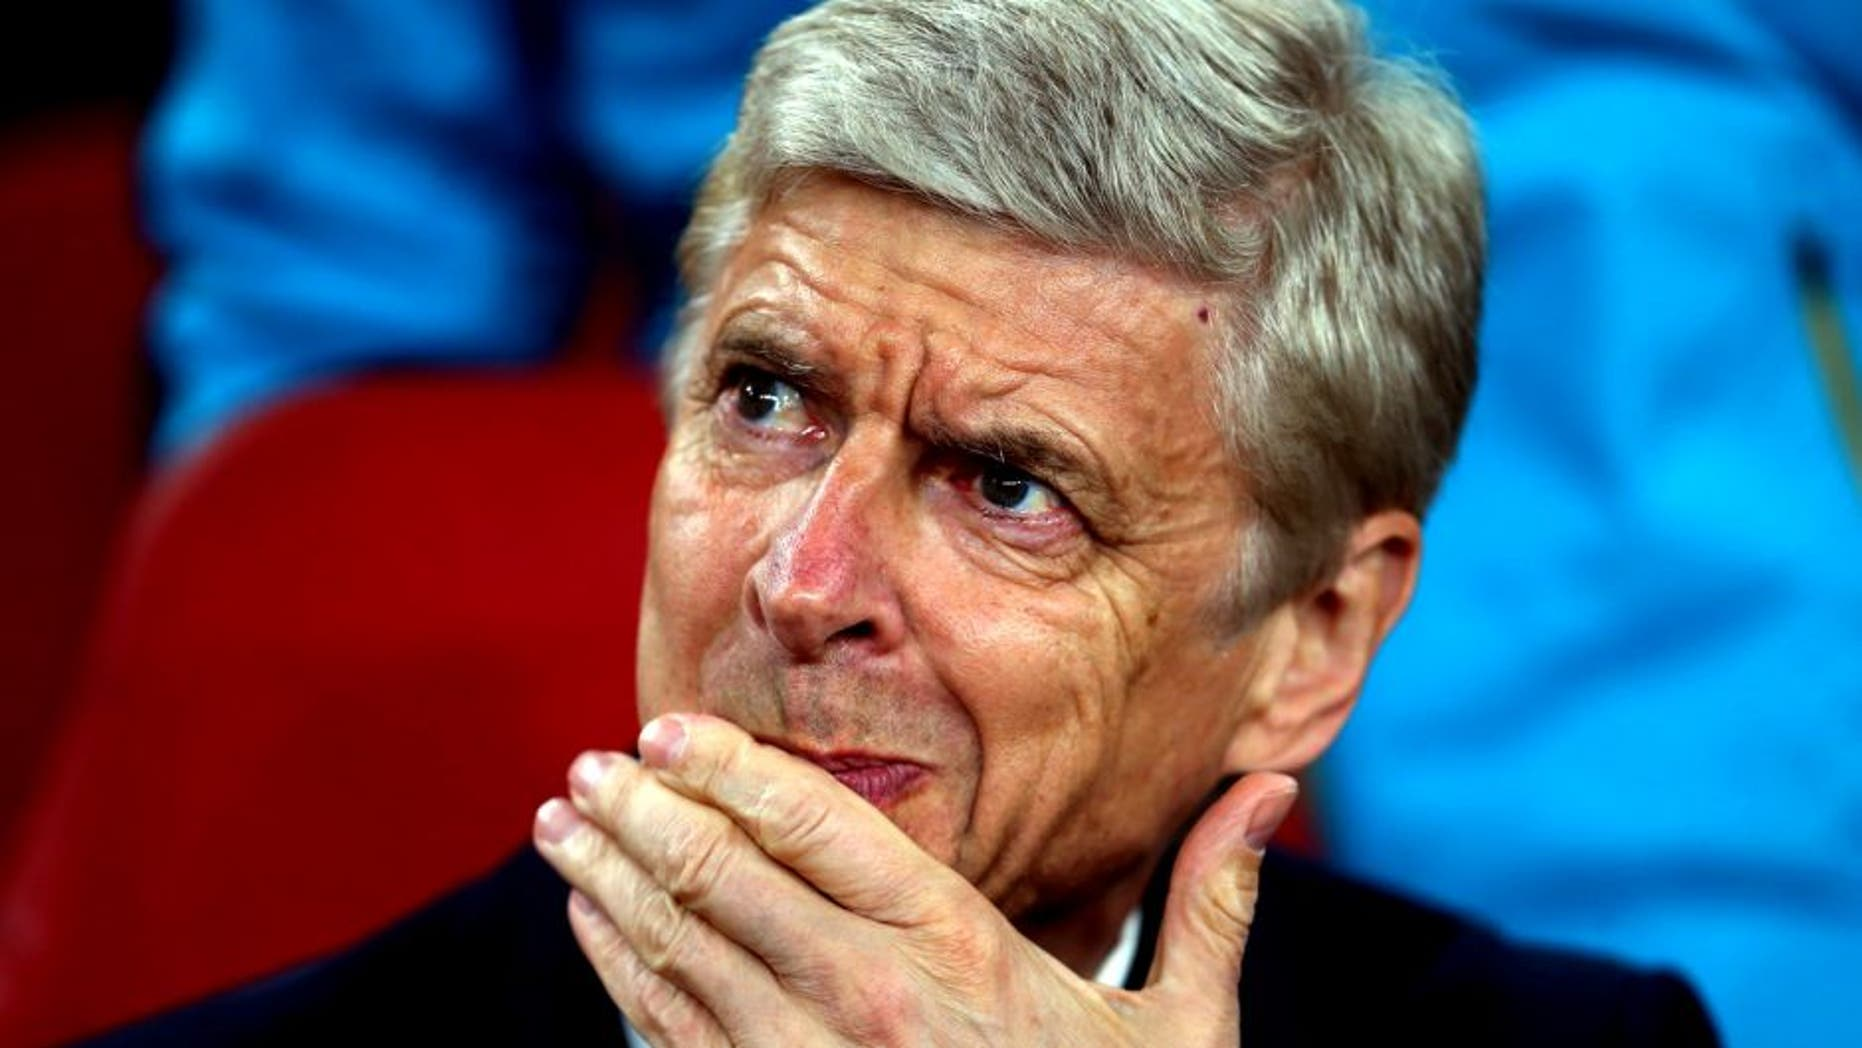 LONDON, ENGLAND - SEPTEMBER 29: Arsene Wenger manager of Arsenal before the UEFA Champions League match between Arsenal and Olympiacos at the Emirates Stadium on September 29, 2015 in London, United Kingdom. (Photo by Catherine Ivill - AMA/Getty Images)